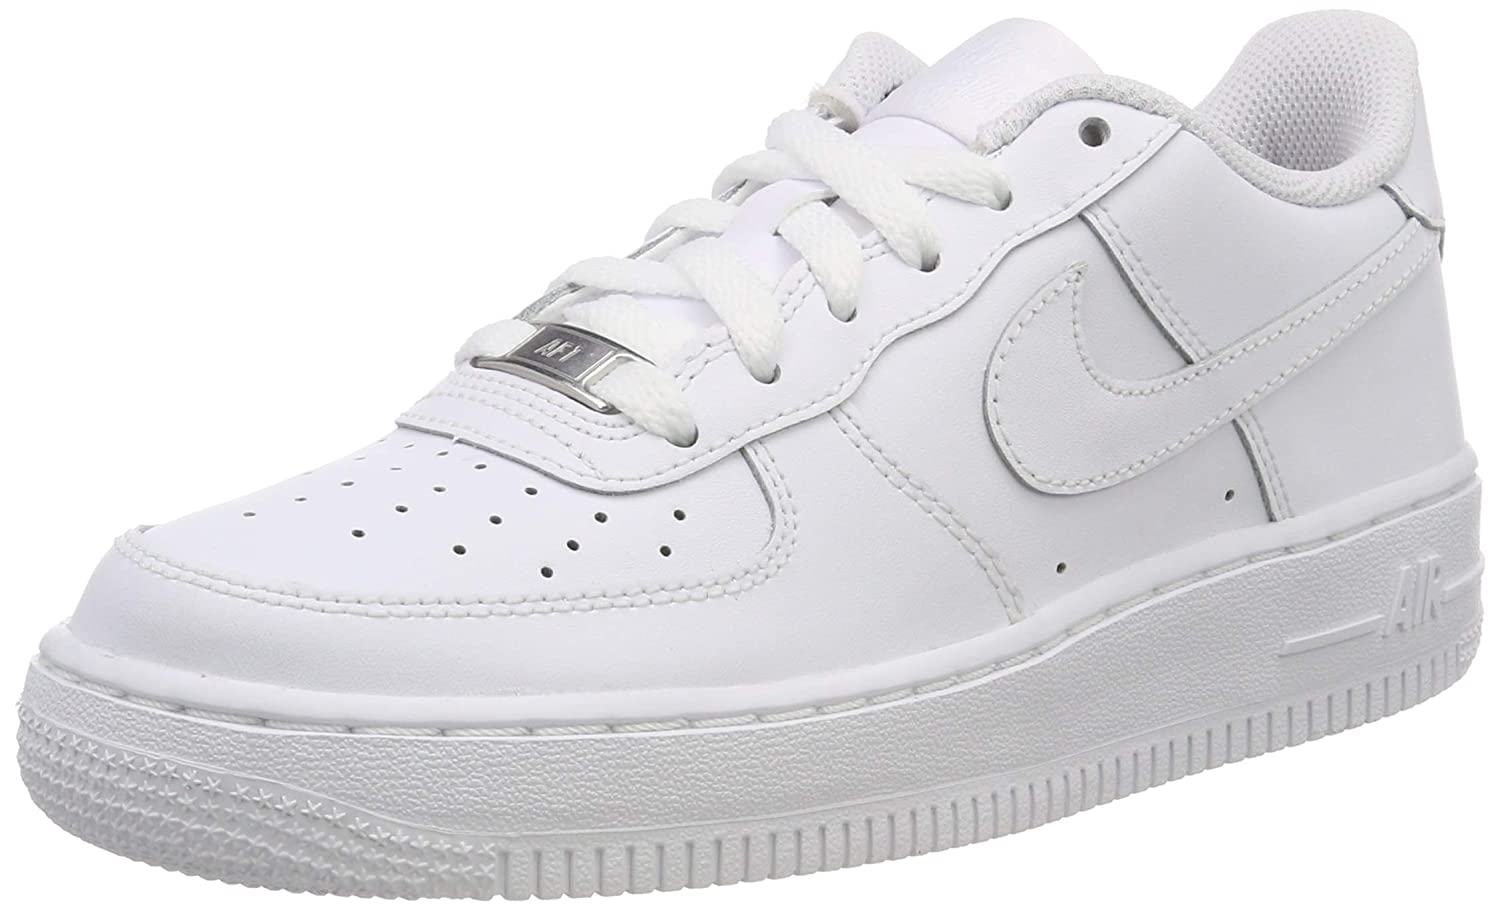 0cb52f68222 Amazon.com: Nike Air Force 1 Low GS Lifestyle Sneakers: Jordan: Shoes